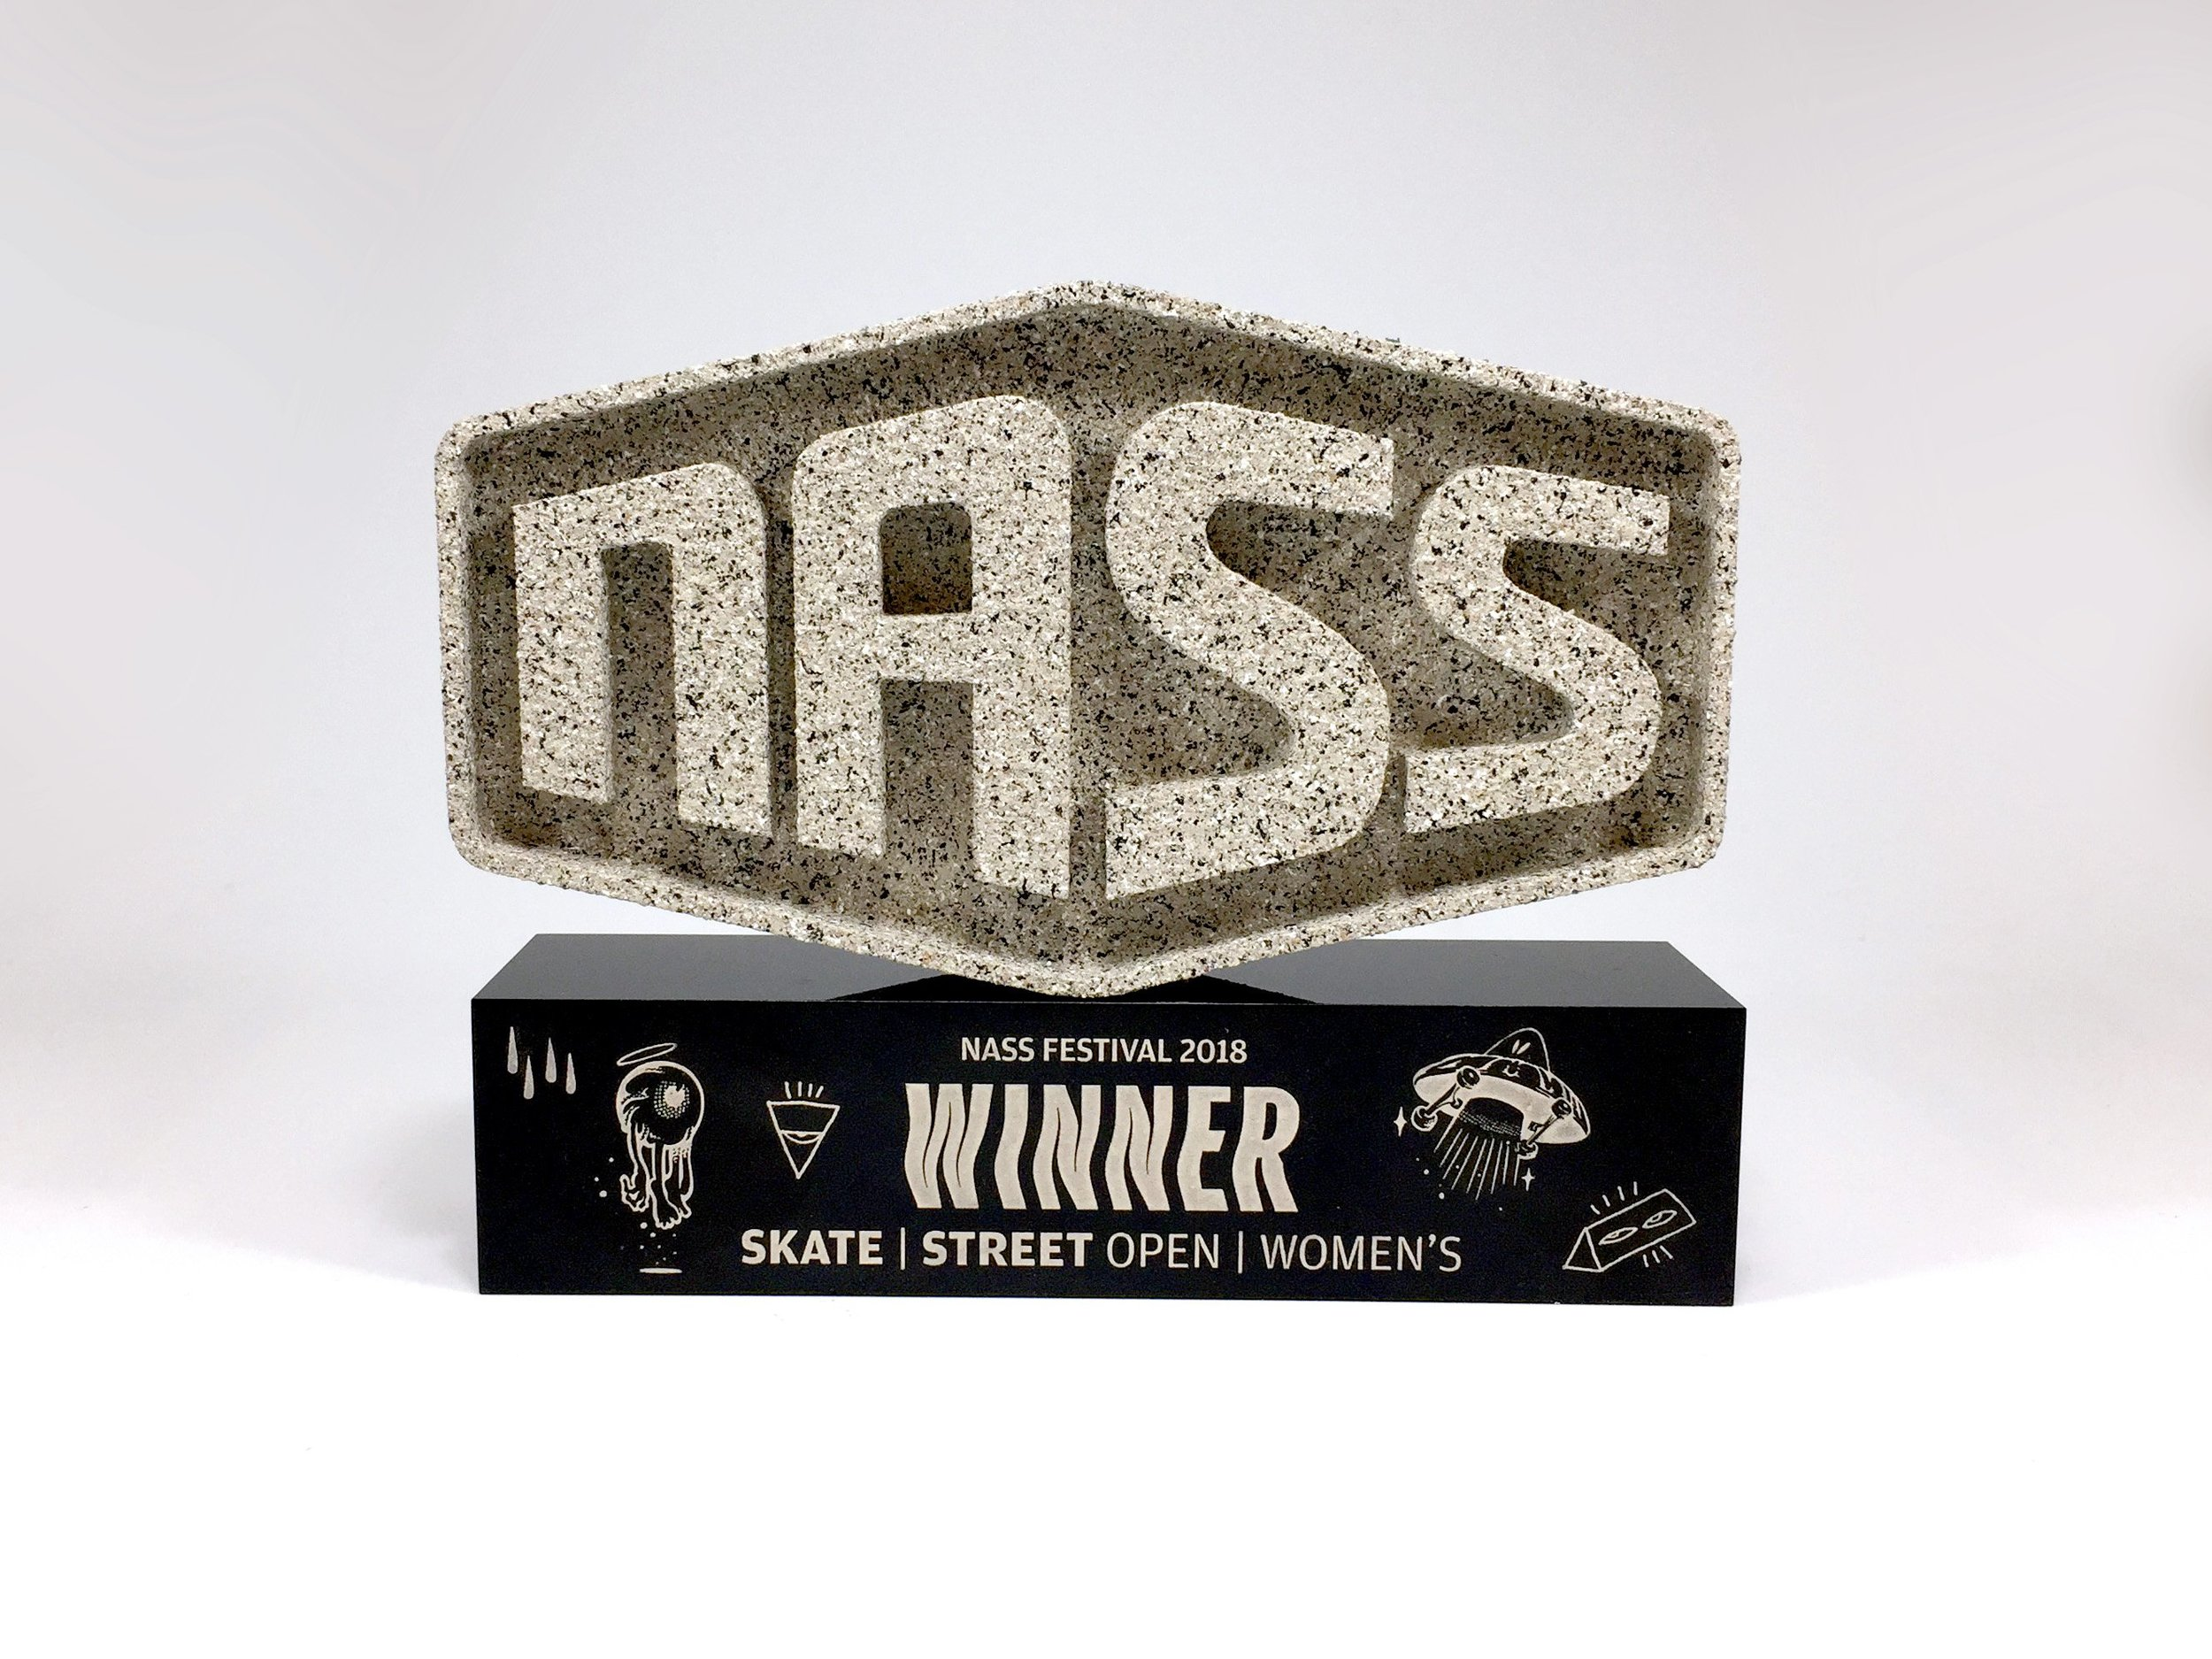 NASS_Stone_Award_front_view.jpg